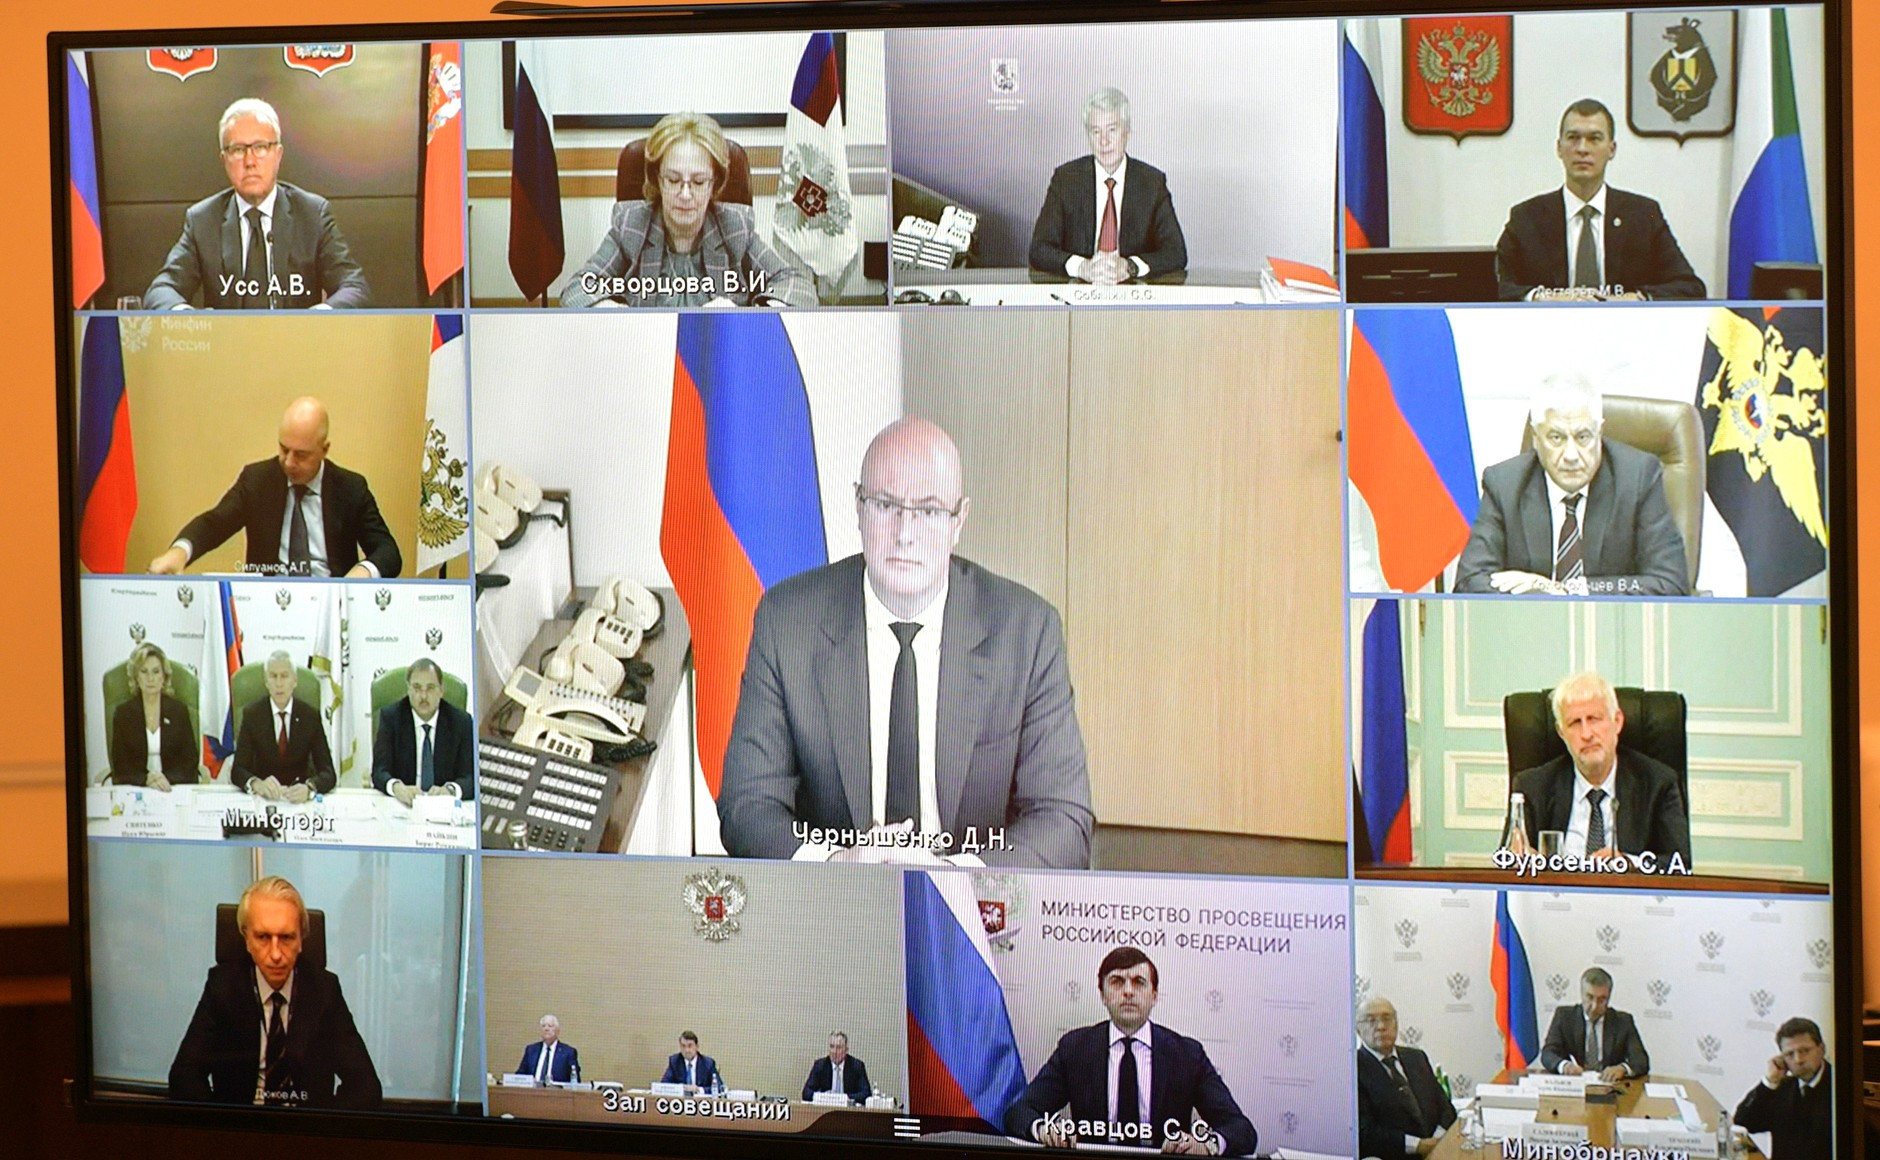 Russia's Deputy Prime Minister Dmitry Chernyshenko, centre, claimed that the country had a zero tolerance to doping ©The Kremlin